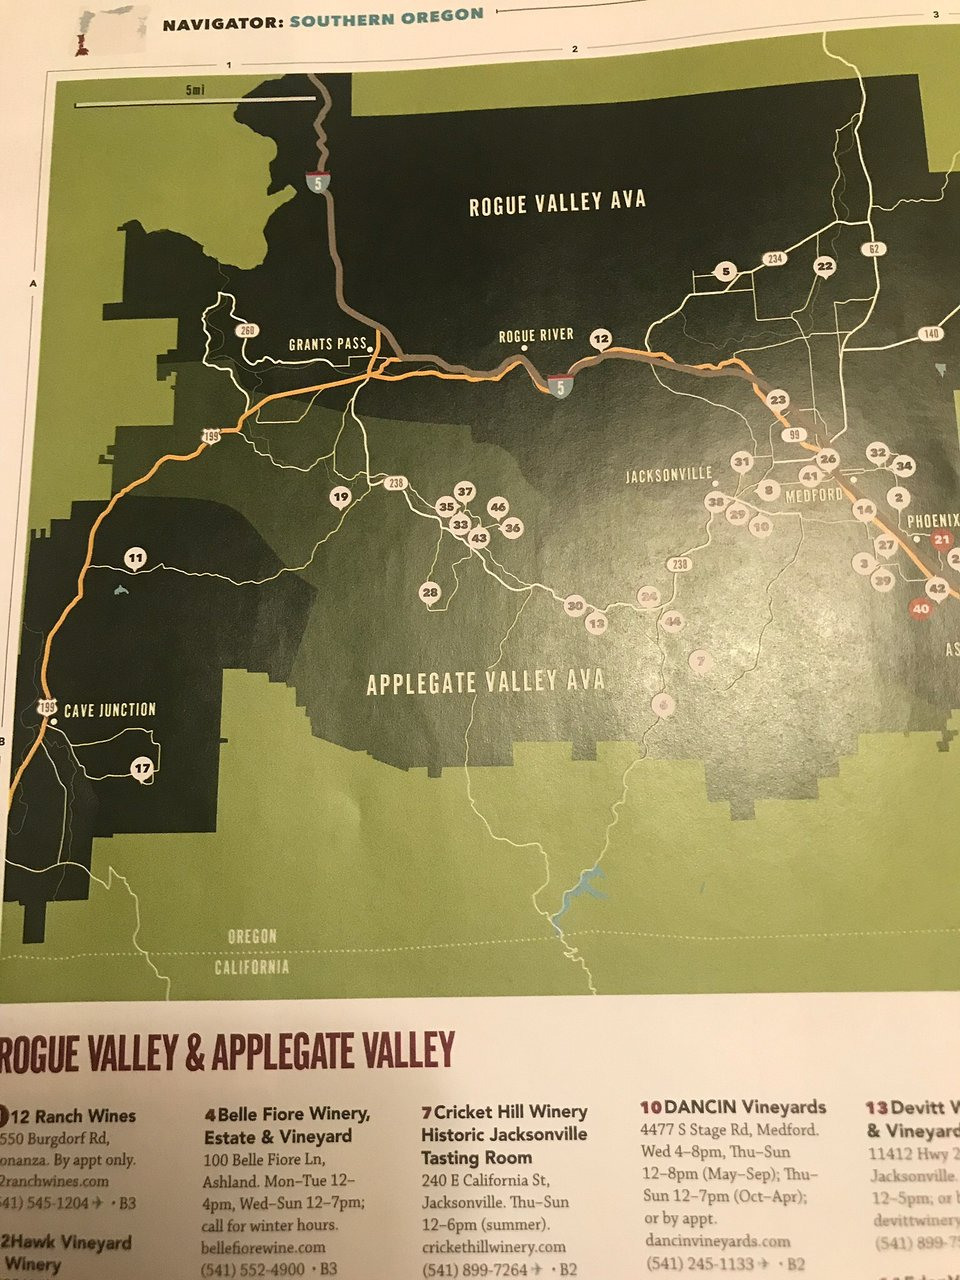 Fiore 6747.Foris Vineyards Cave Junction 2020 All You Need To Know Before